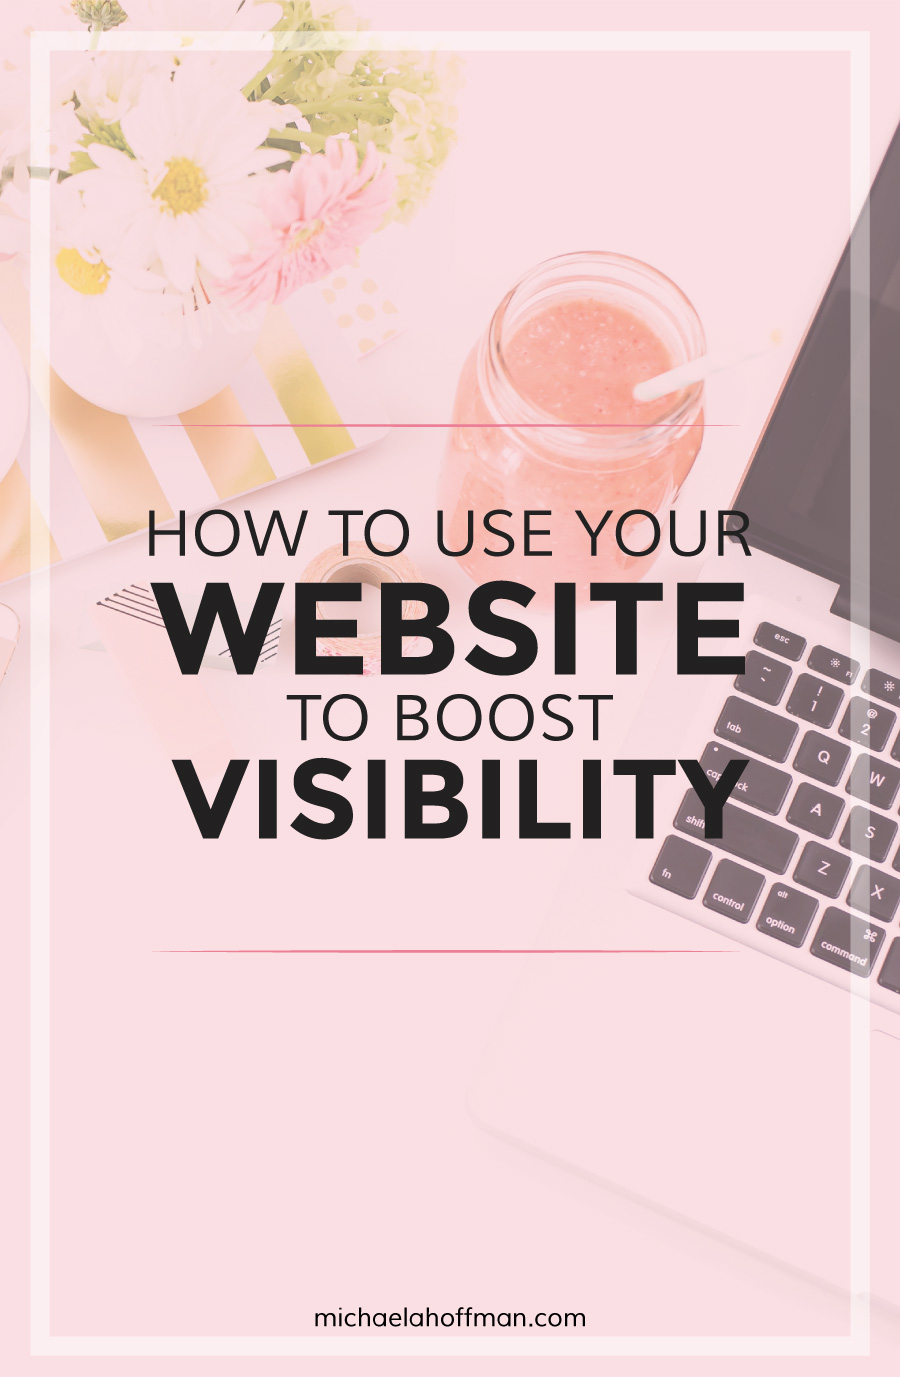 How to use your website to boost visibility for your online business.   michaelahoffman.com